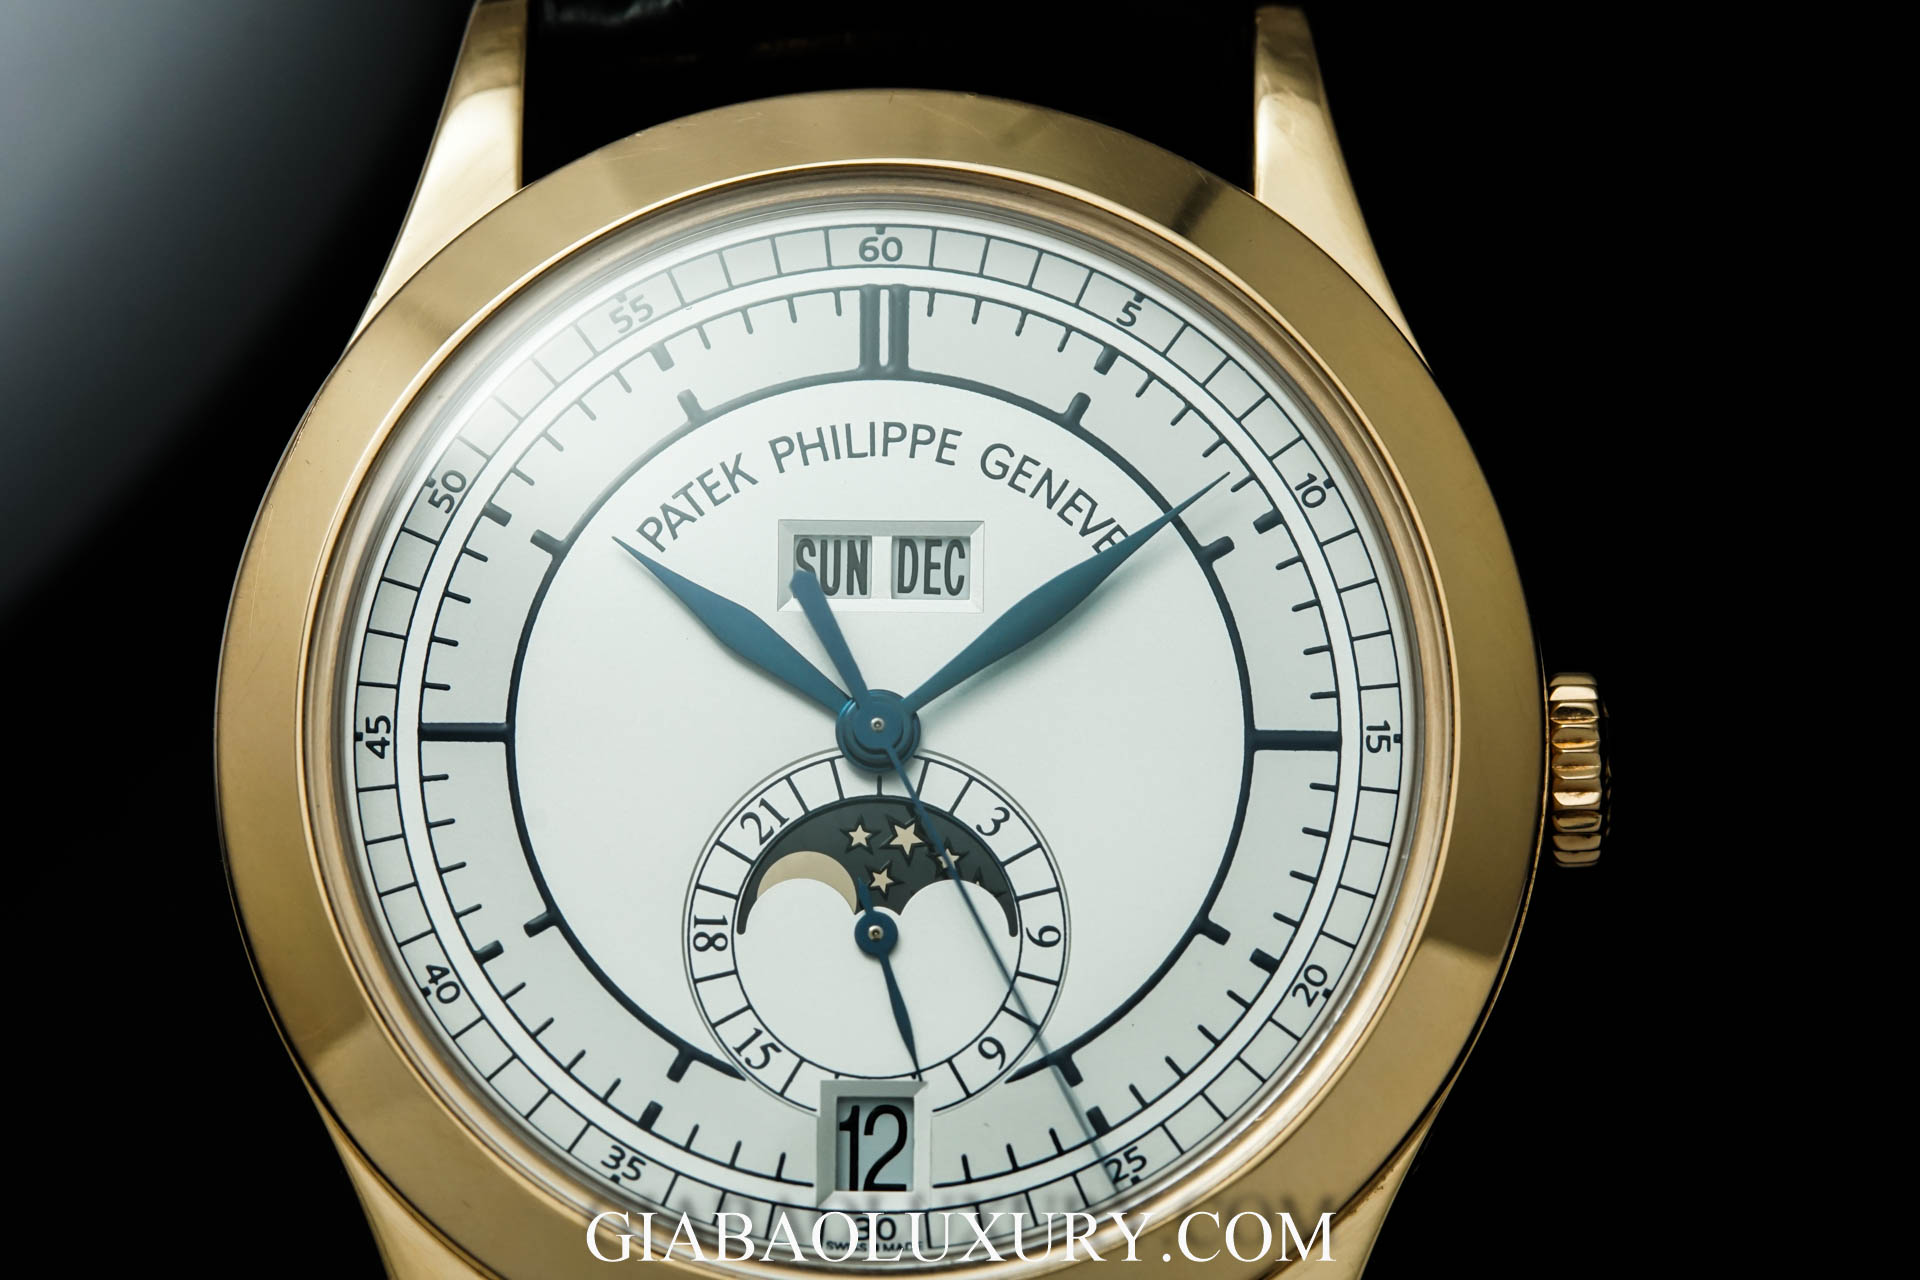 Patek Philippe 5396r-001 Watch